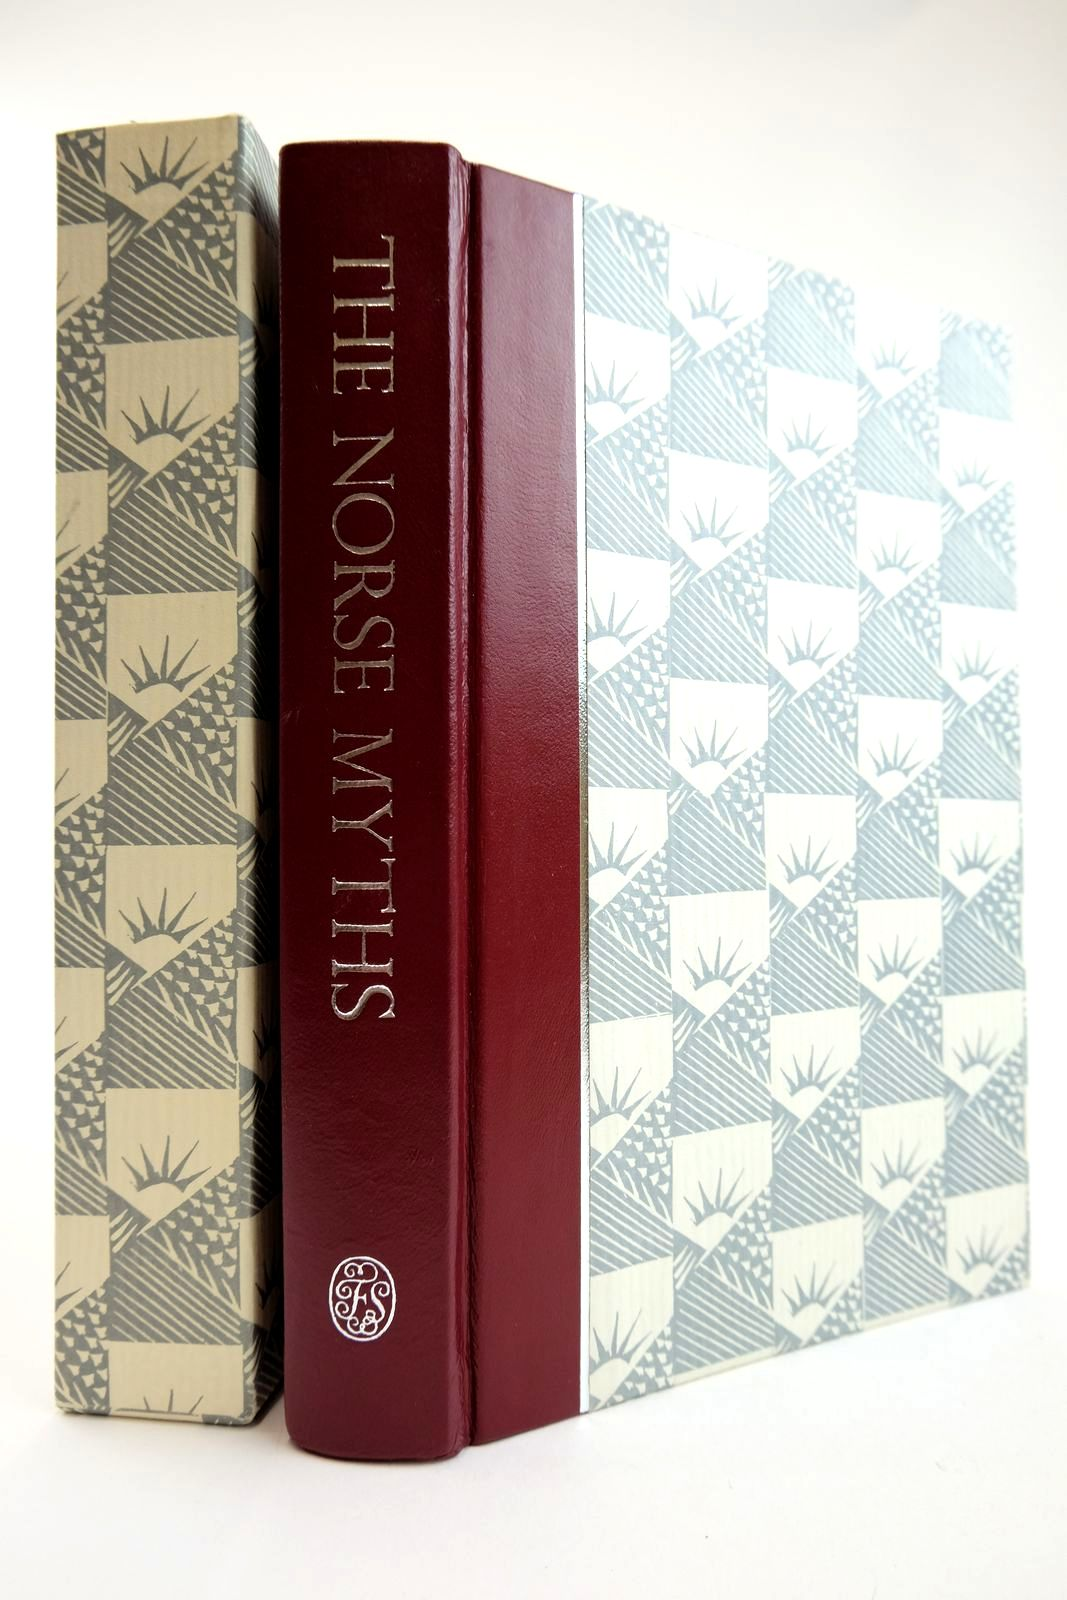 Photo of THE NORSE MYTHS written by Crossley-Holland, Kevin illustrated by Lydbury, Jane published by Folio Society (STOCK CODE: 2132375)  for sale by Stella & Rose's Books